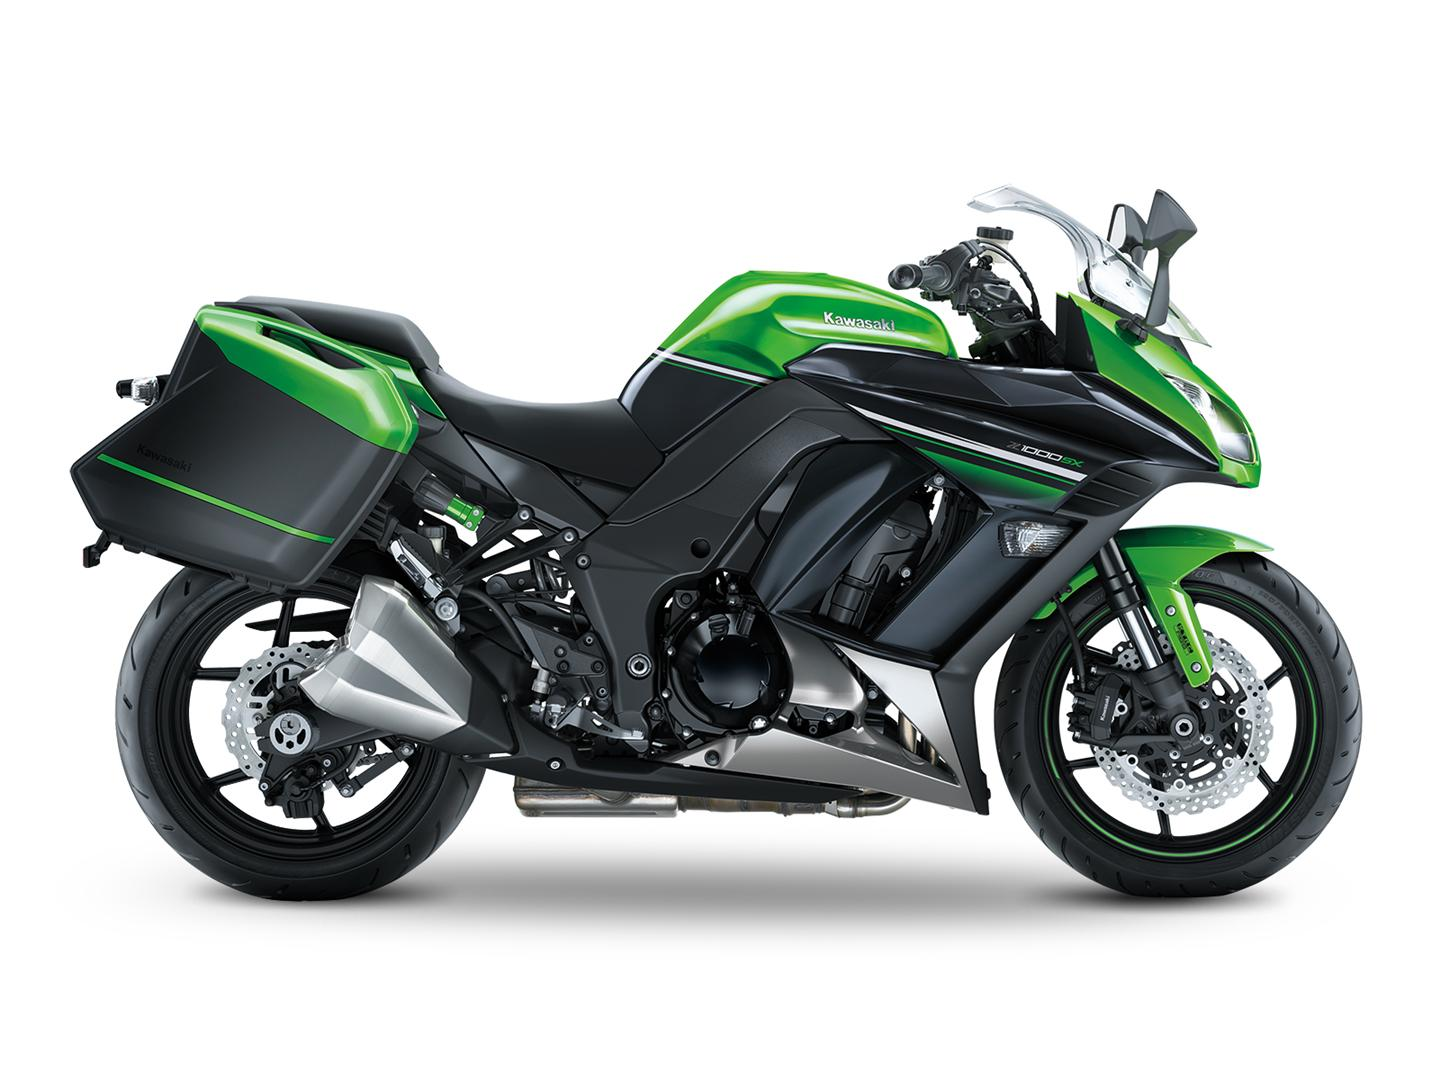 kawasaki z1000 sx tourer specs 2016 2017 2018. Black Bedroom Furniture Sets. Home Design Ideas